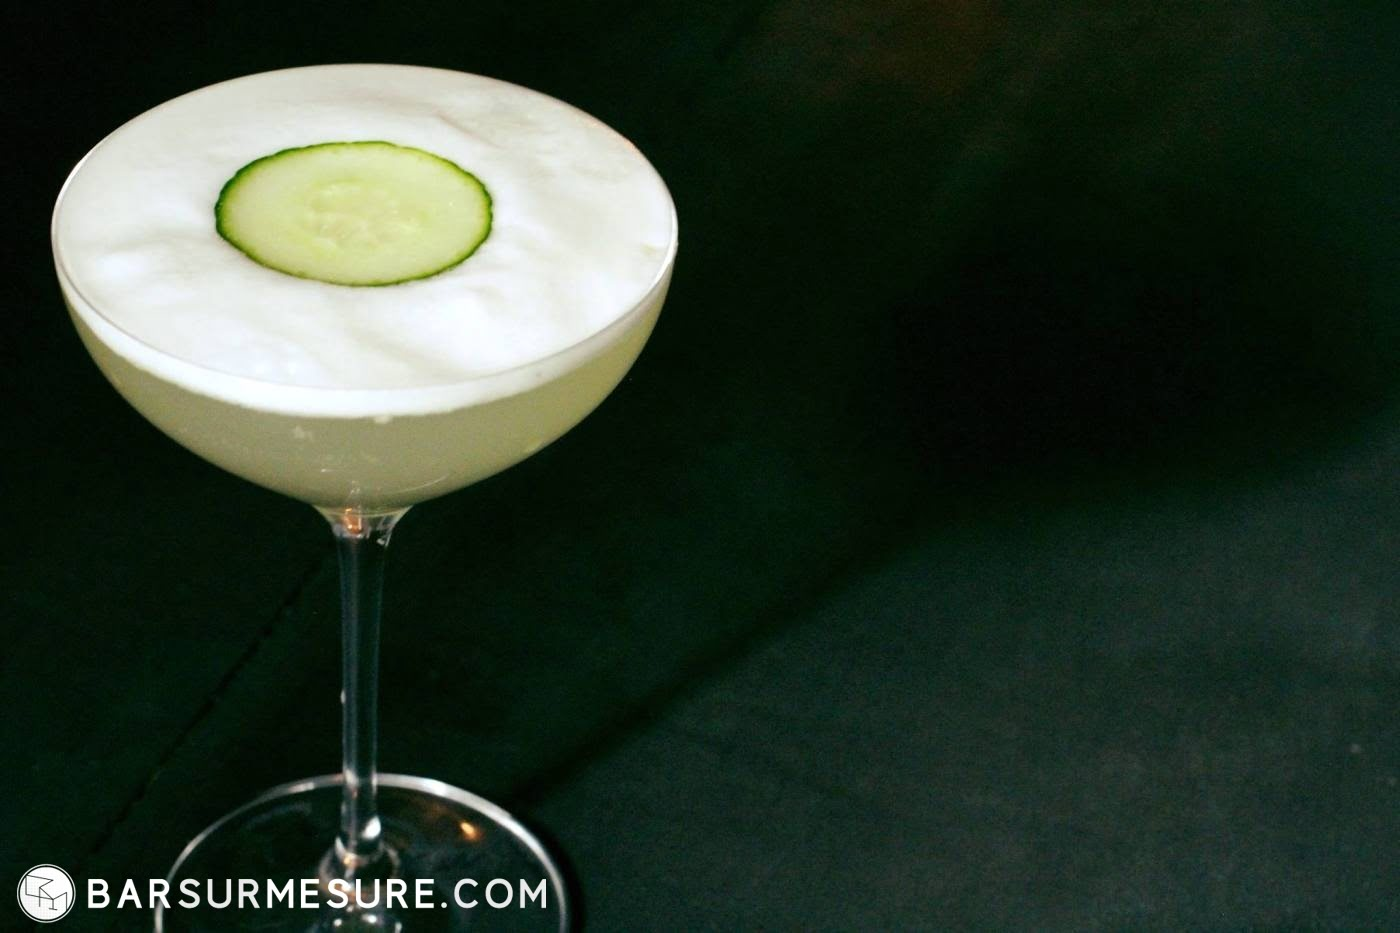 bar sur mesure station custom cocktail bar cucumber sour alexis taoufiq